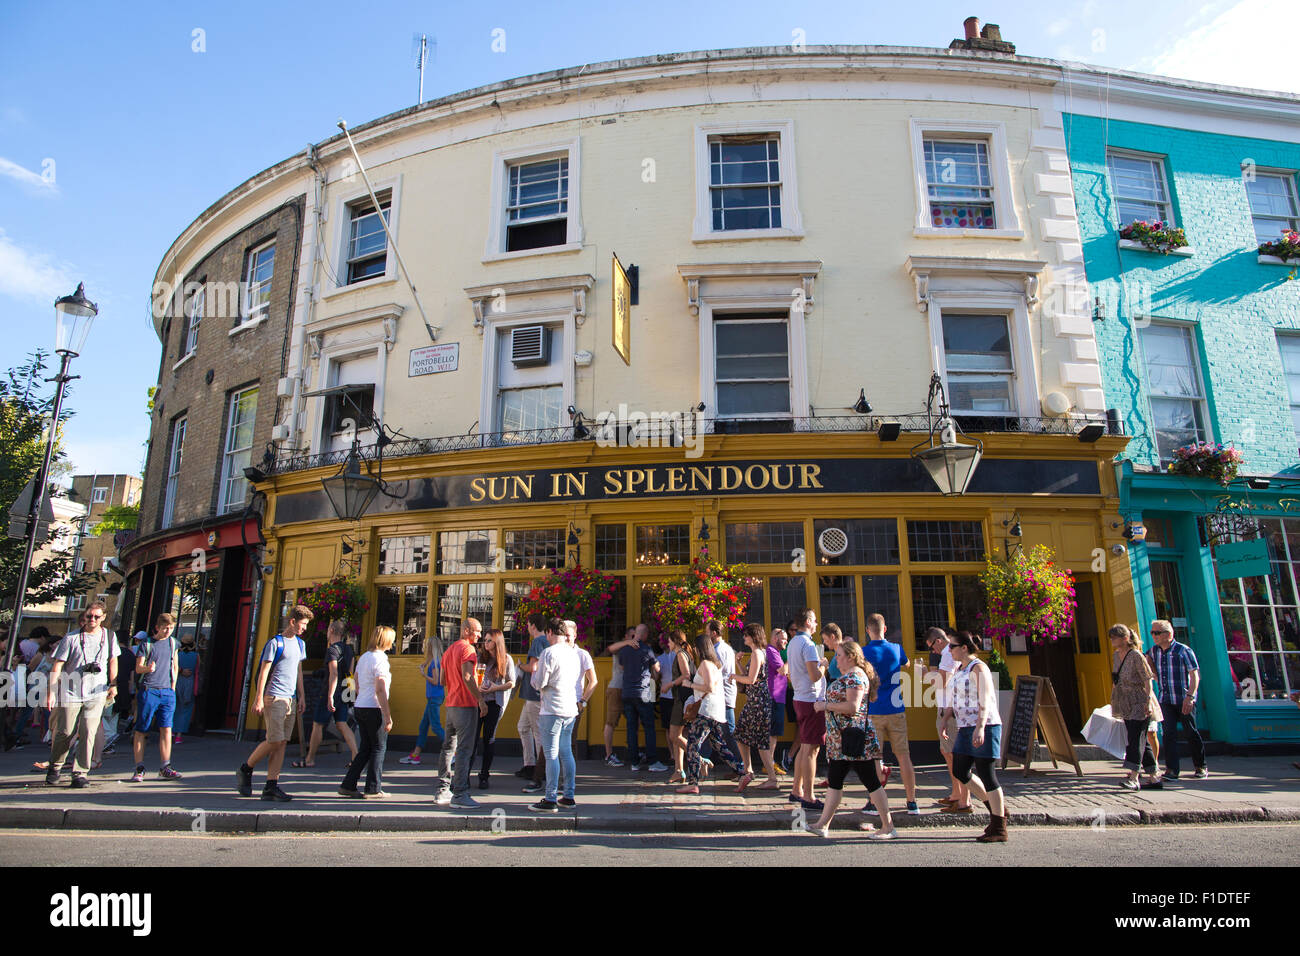 The Sun In Splendour pub, one of the oldest pubs in London, located on Portobello Road, Notting Hill, West London, - Stock Image